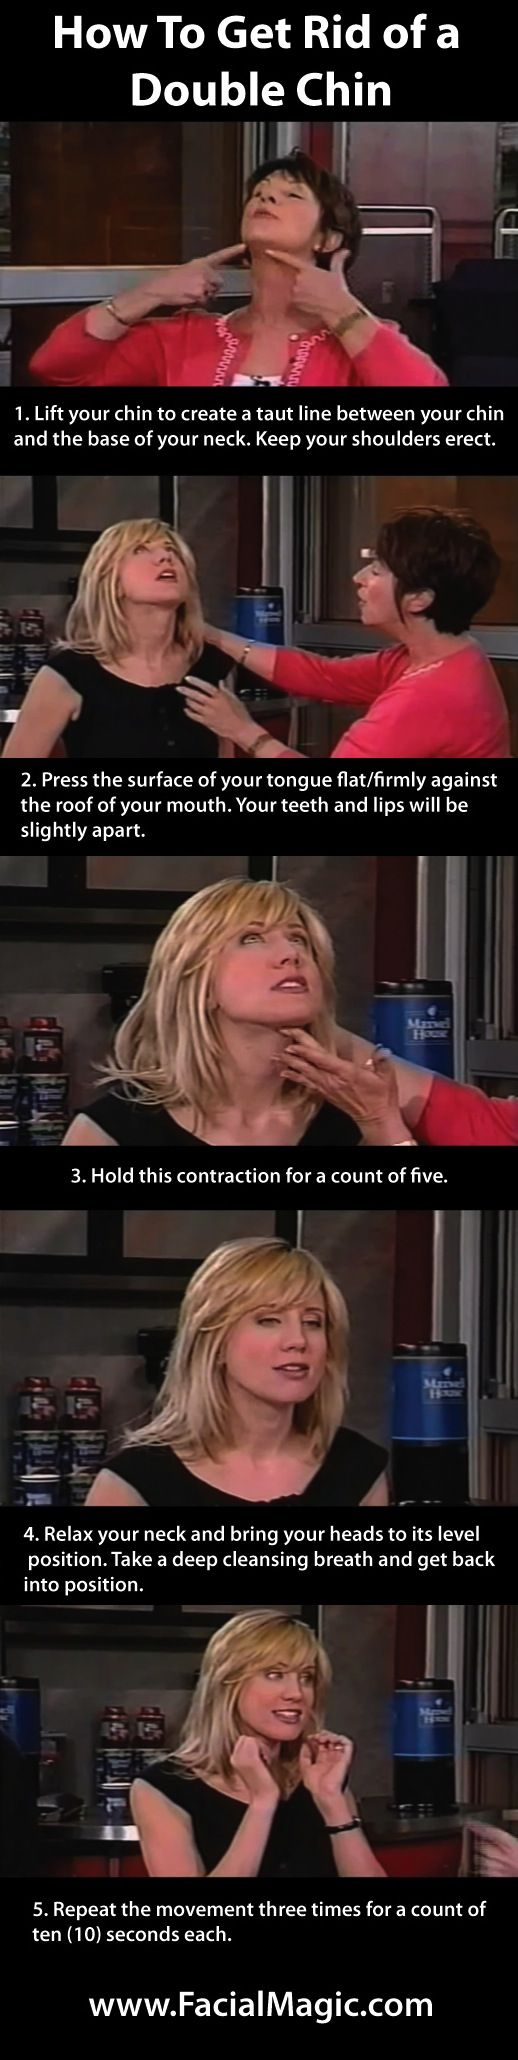 I am so doing this! How To Get Rid of a Double Chin Doing Facial Exercise http://www.youtube.com/watch?v=LMo85HUsXA4